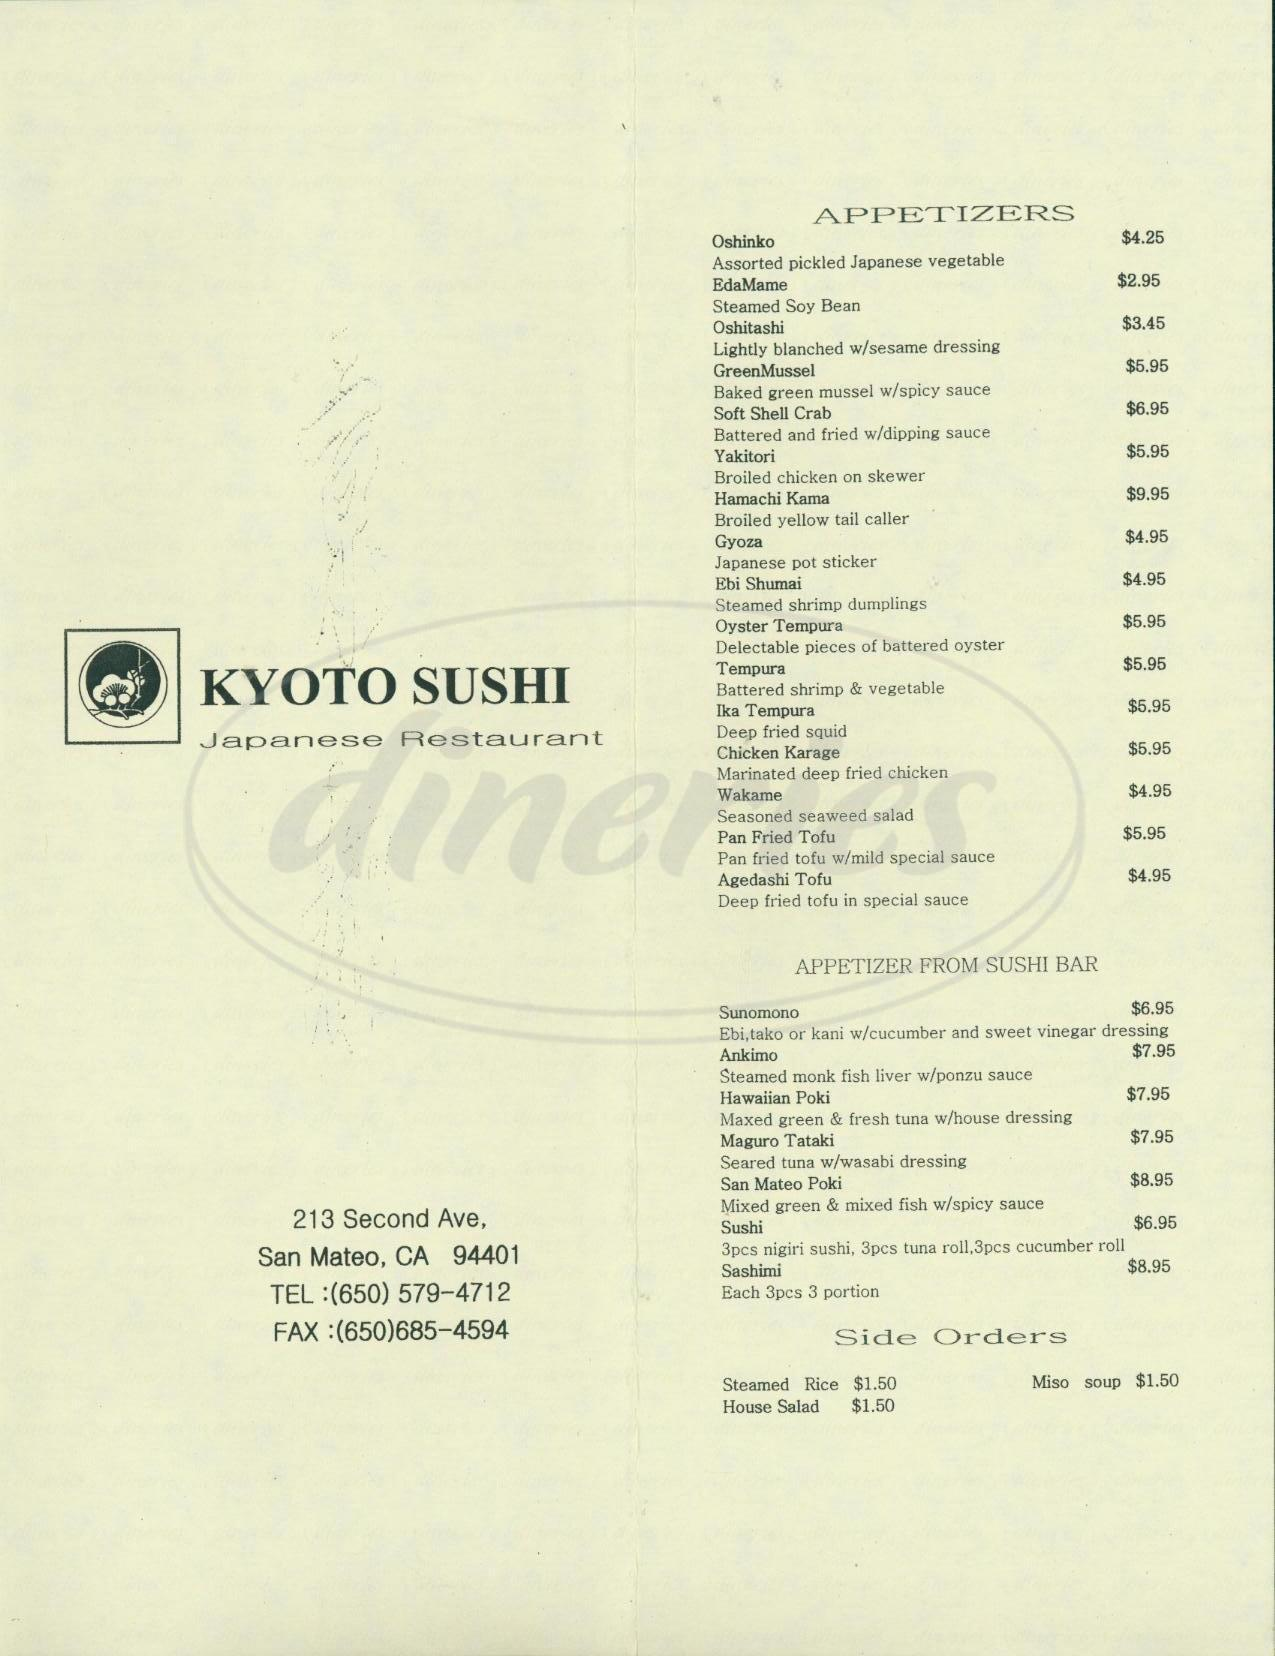 menu for Kyoto Sushi